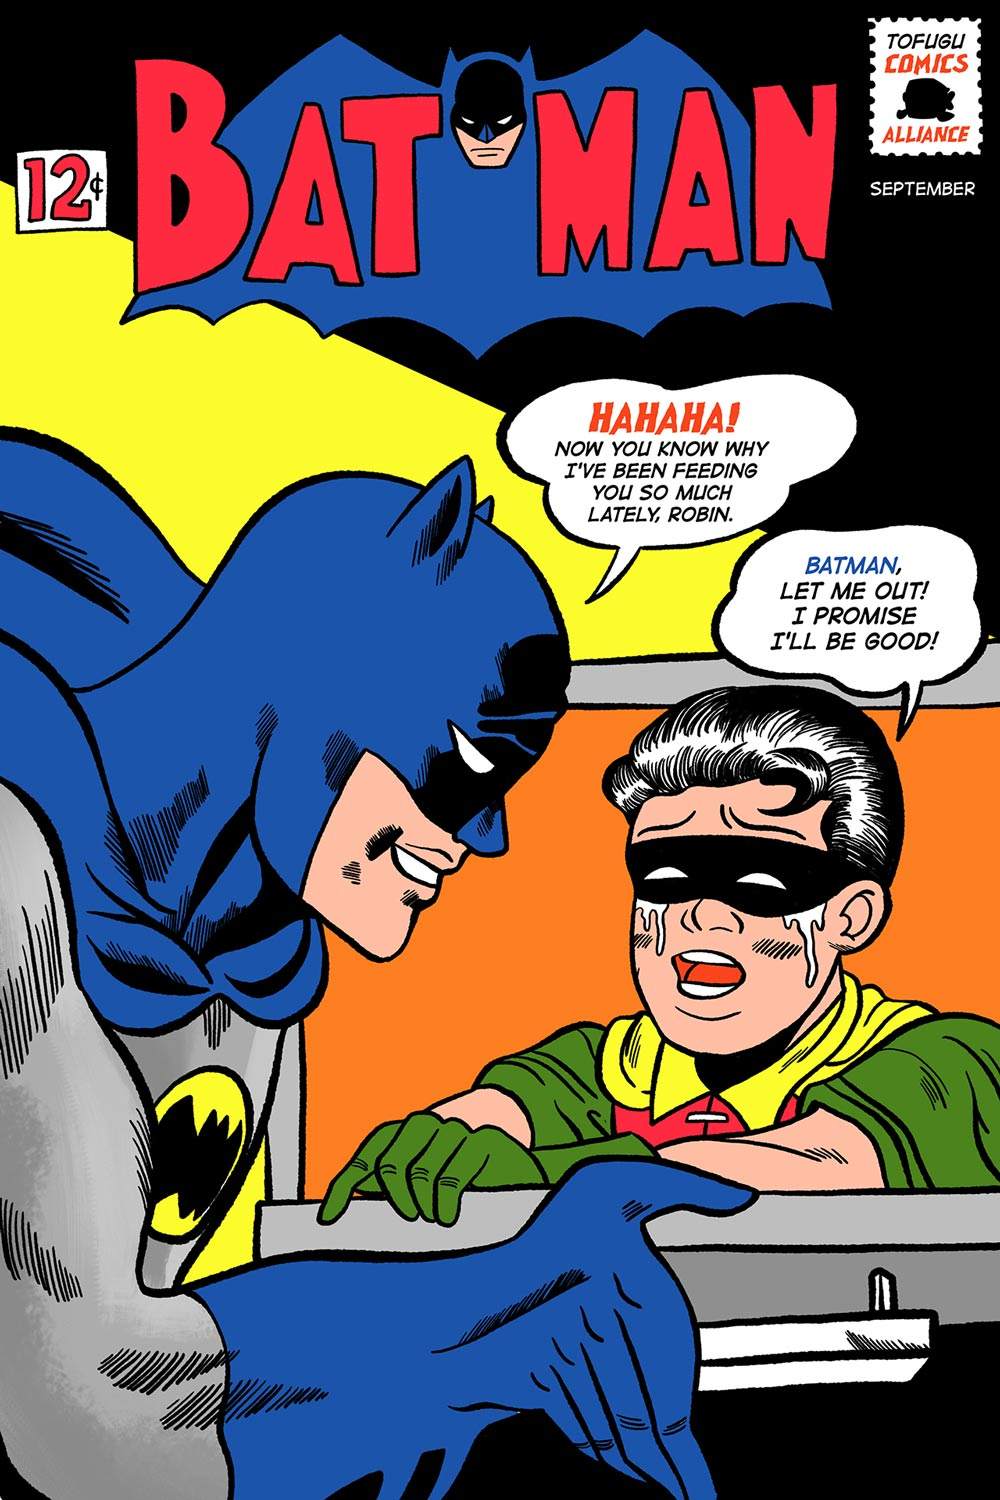 batman doujinshi featuring robin in an oven